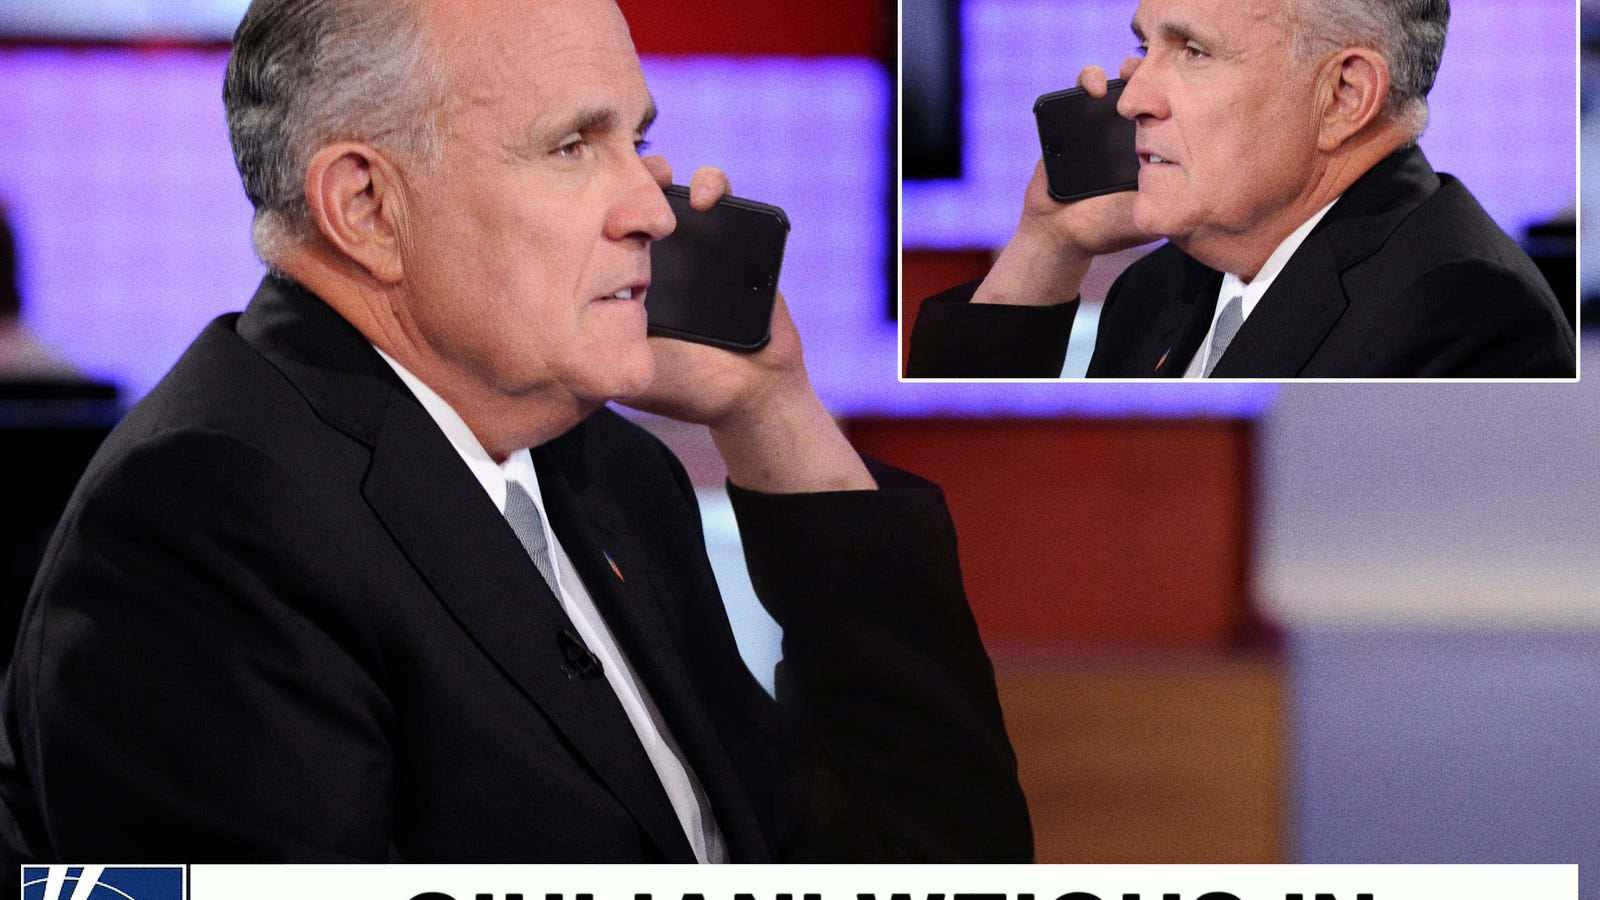 Rudy Giuliani Calls In To Talk Show He Already On To Deny What He Just Said